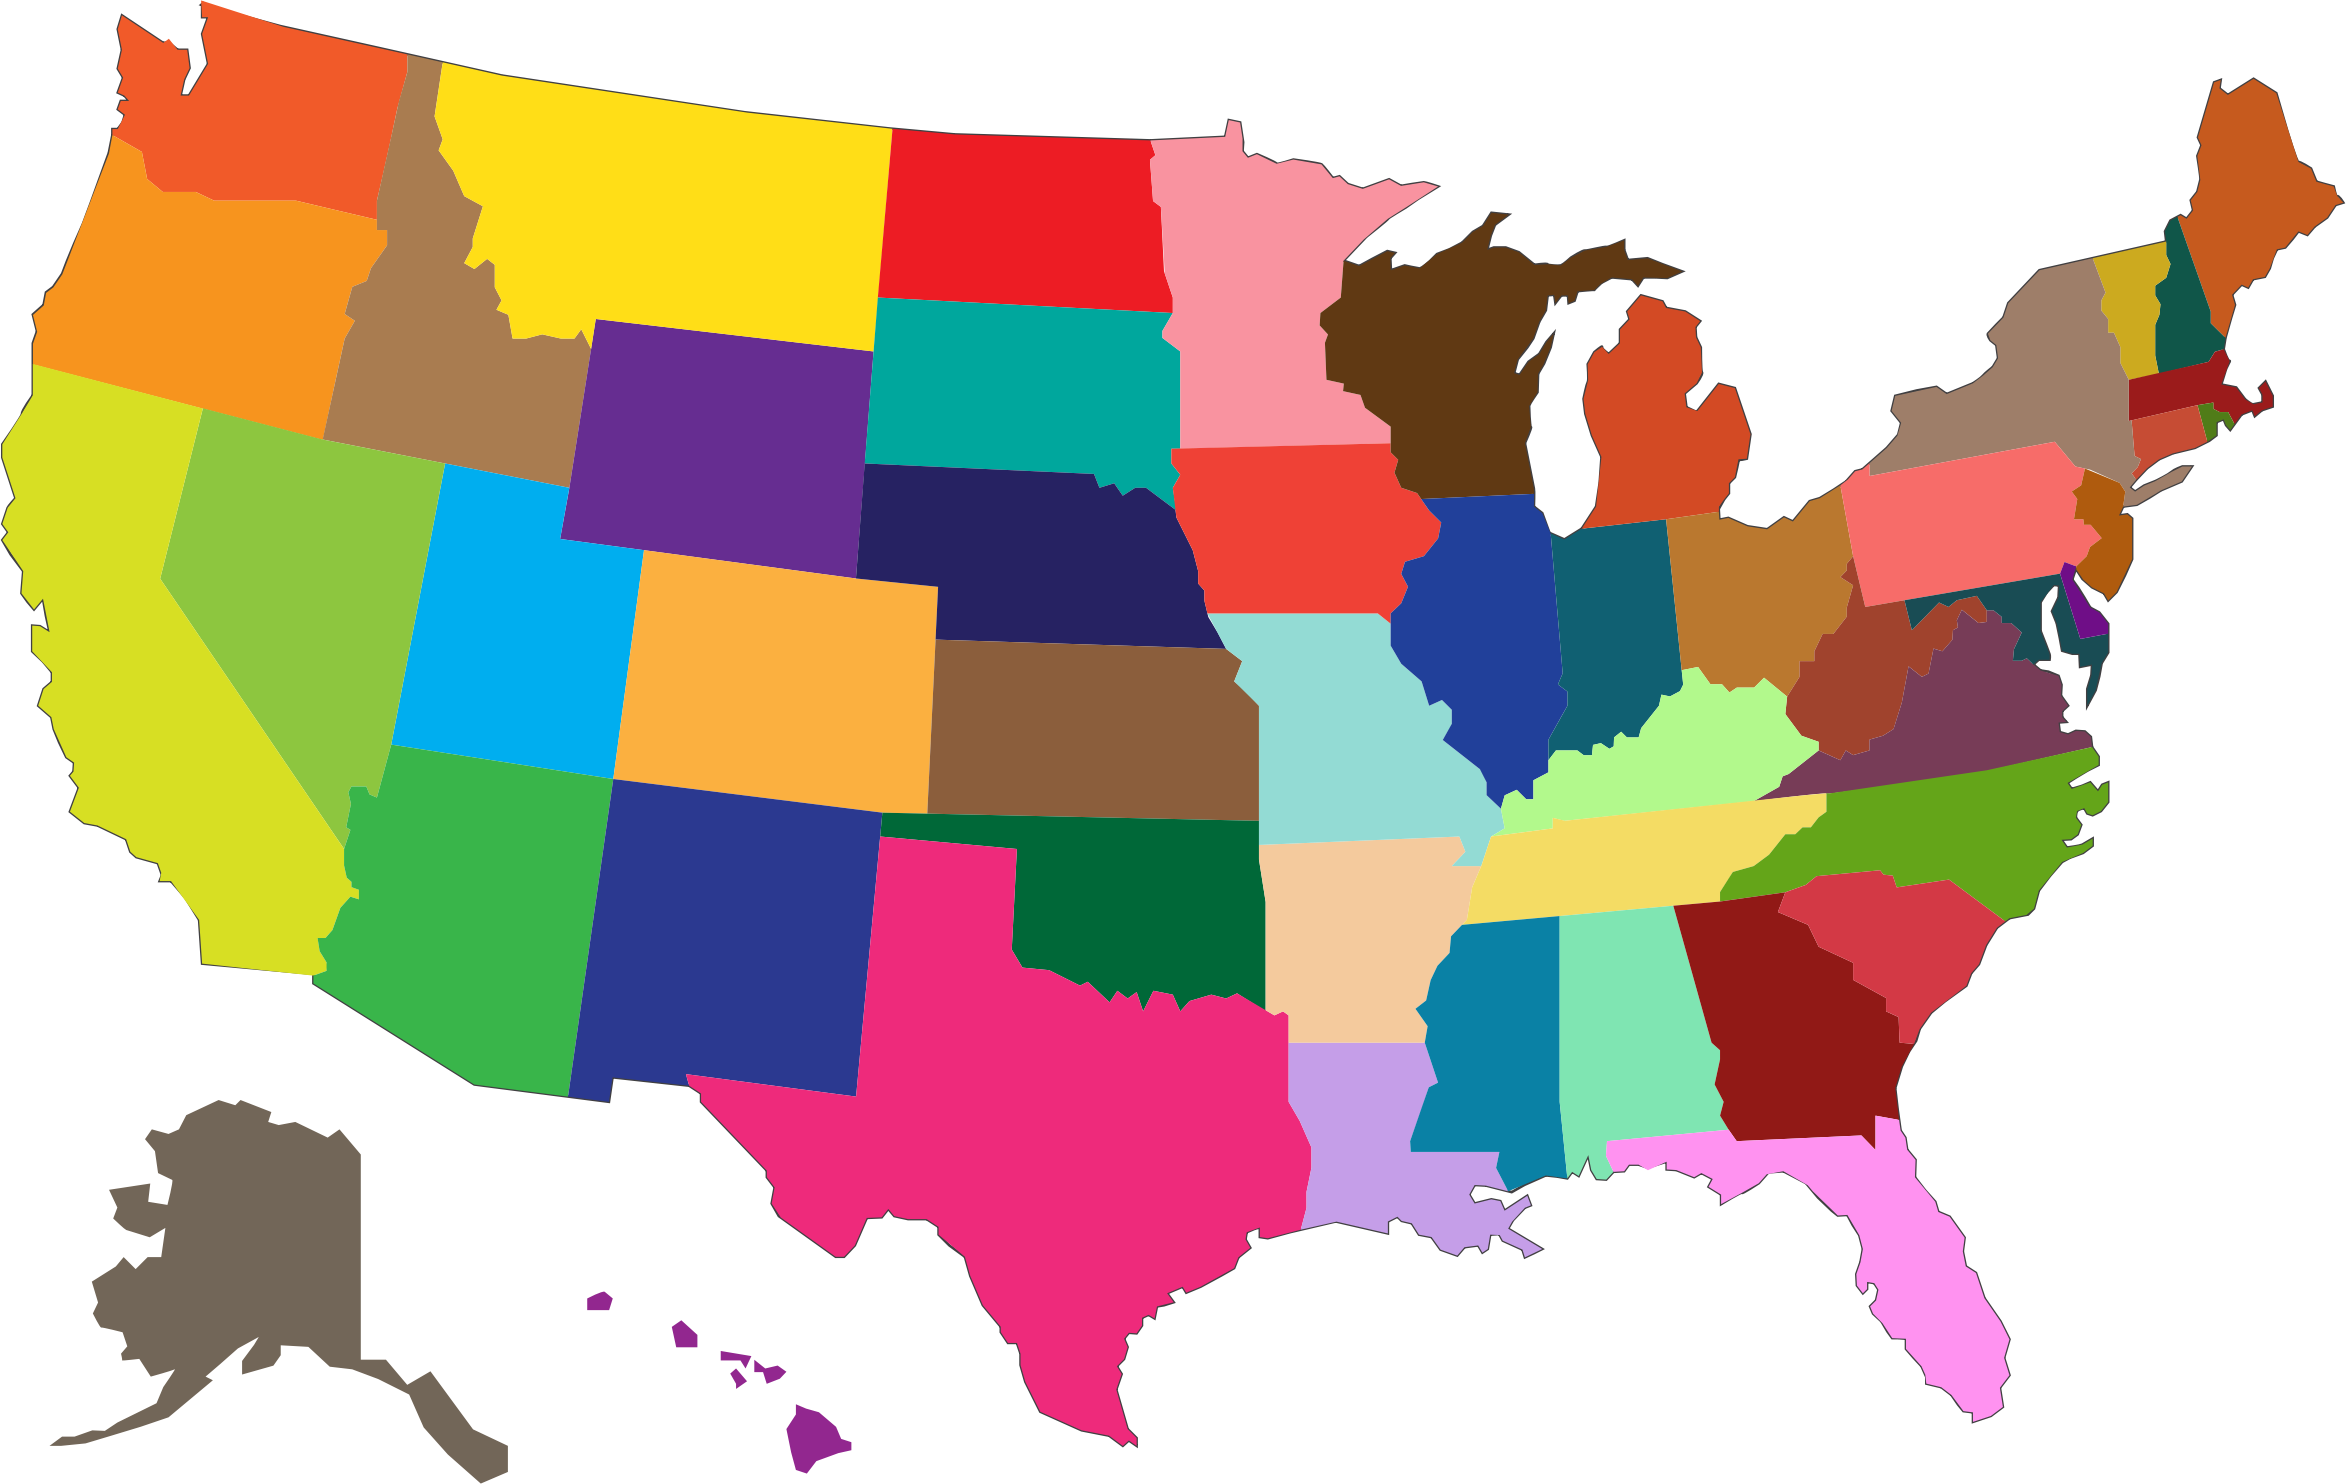 United states map png. Multicolored icons free and